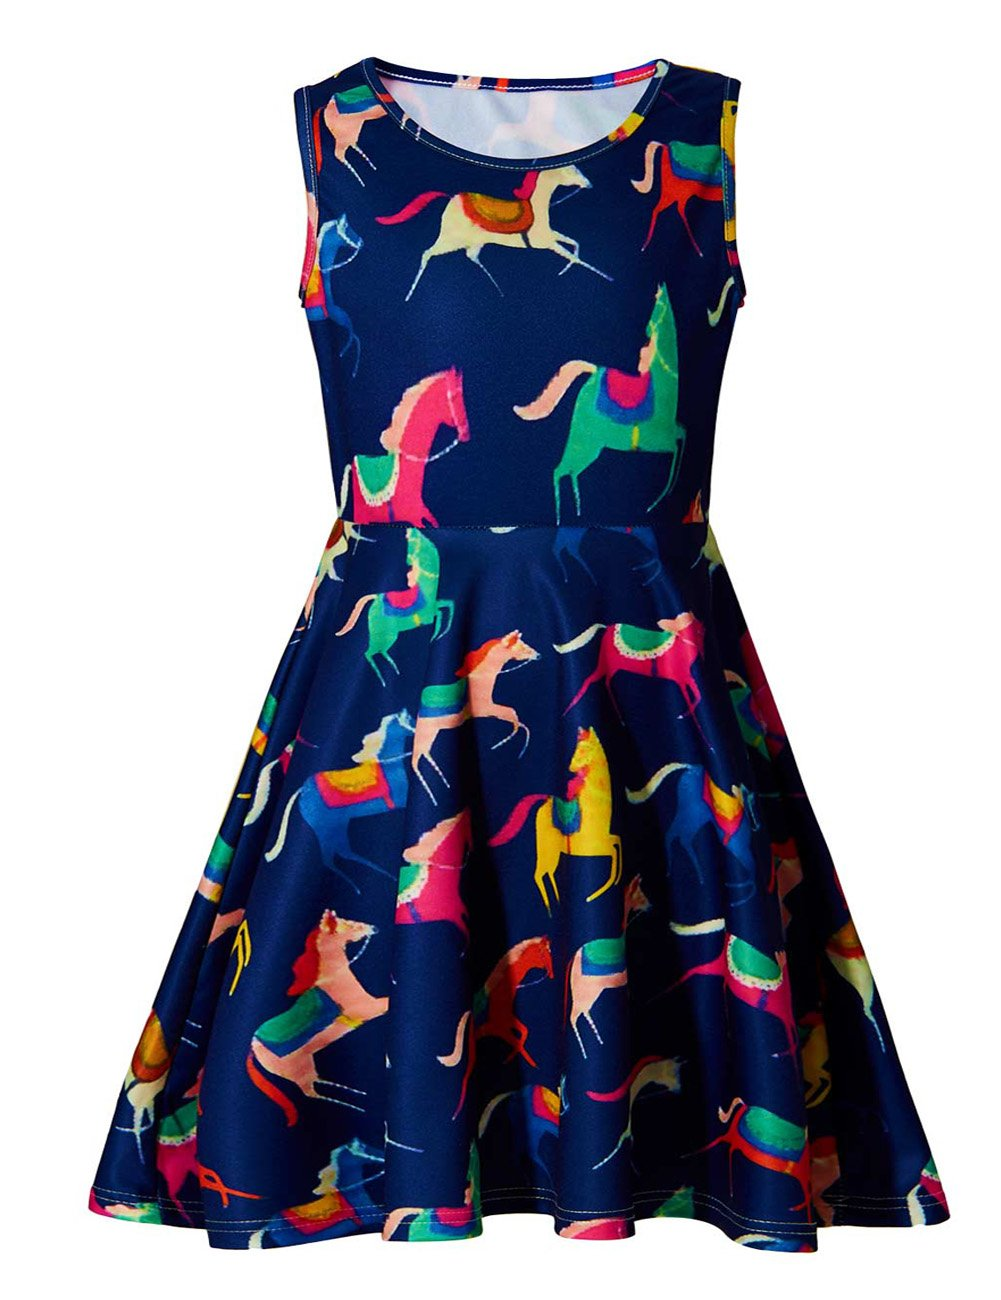 Uideazone Little Girls Print Unicorn Cute Funny A-Line Sleeveless Dress 6-7 Years by Uideazone (Image #1)